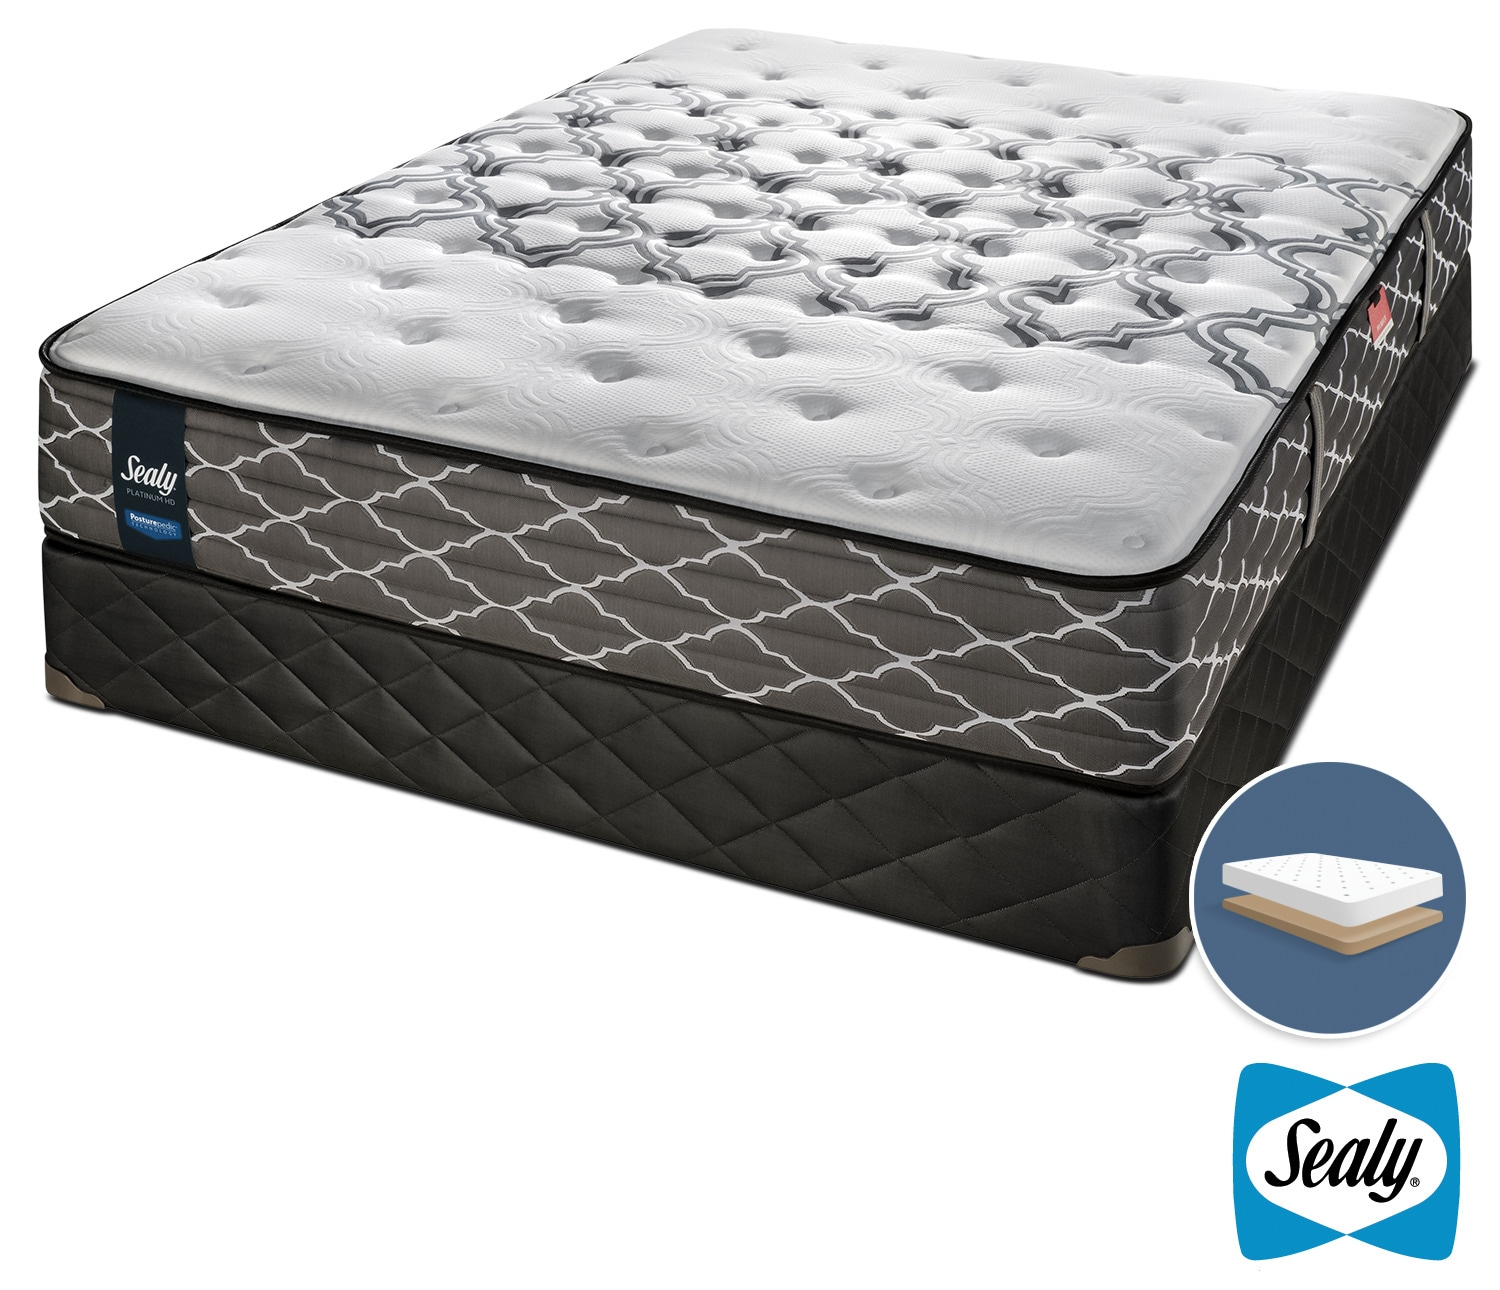 Mattresses and Bedding - Sealy Late Night Hybrid Extra Firm Full Mattress and Low-Profile Boxspring Set